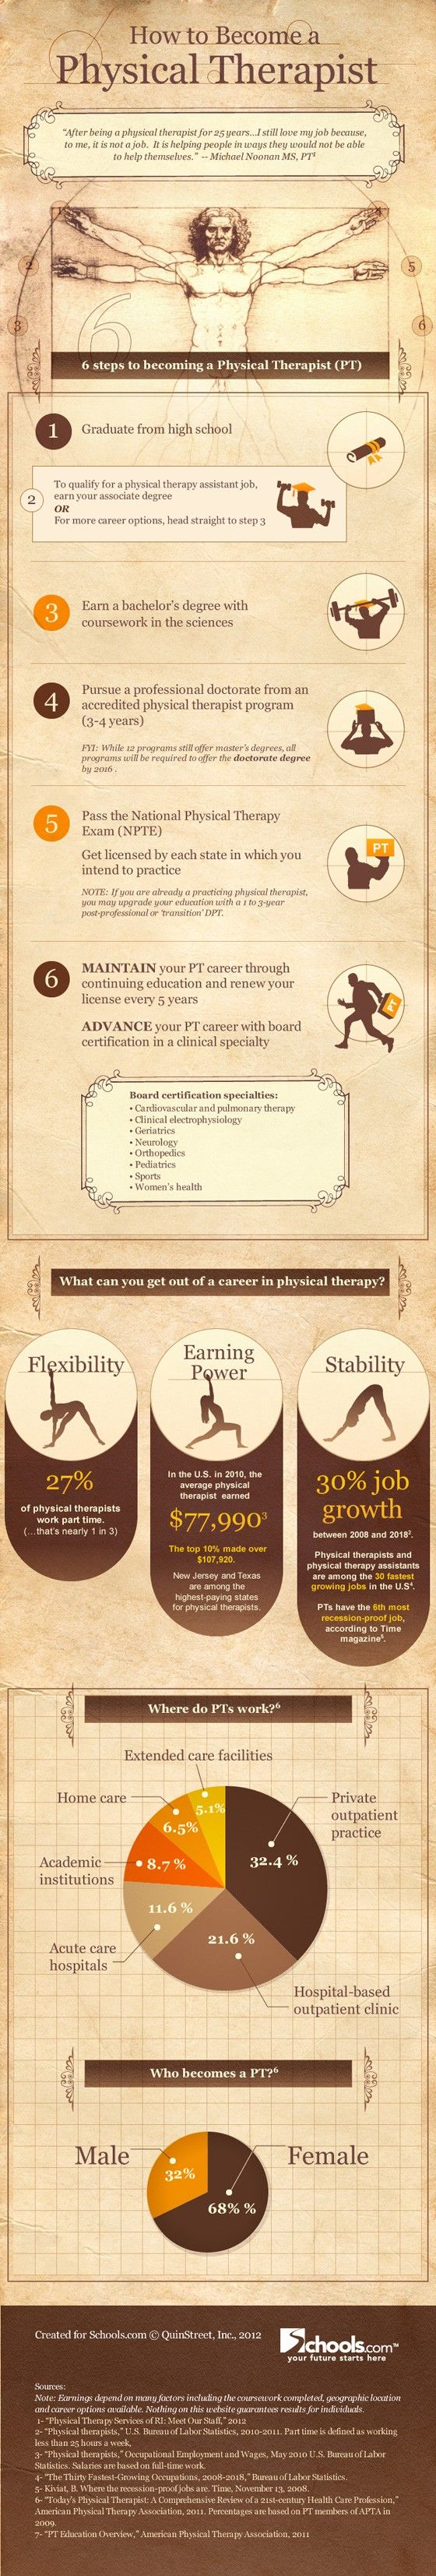 A career in pediatric physical therapy - How To Become A Physical Therapist Infographic